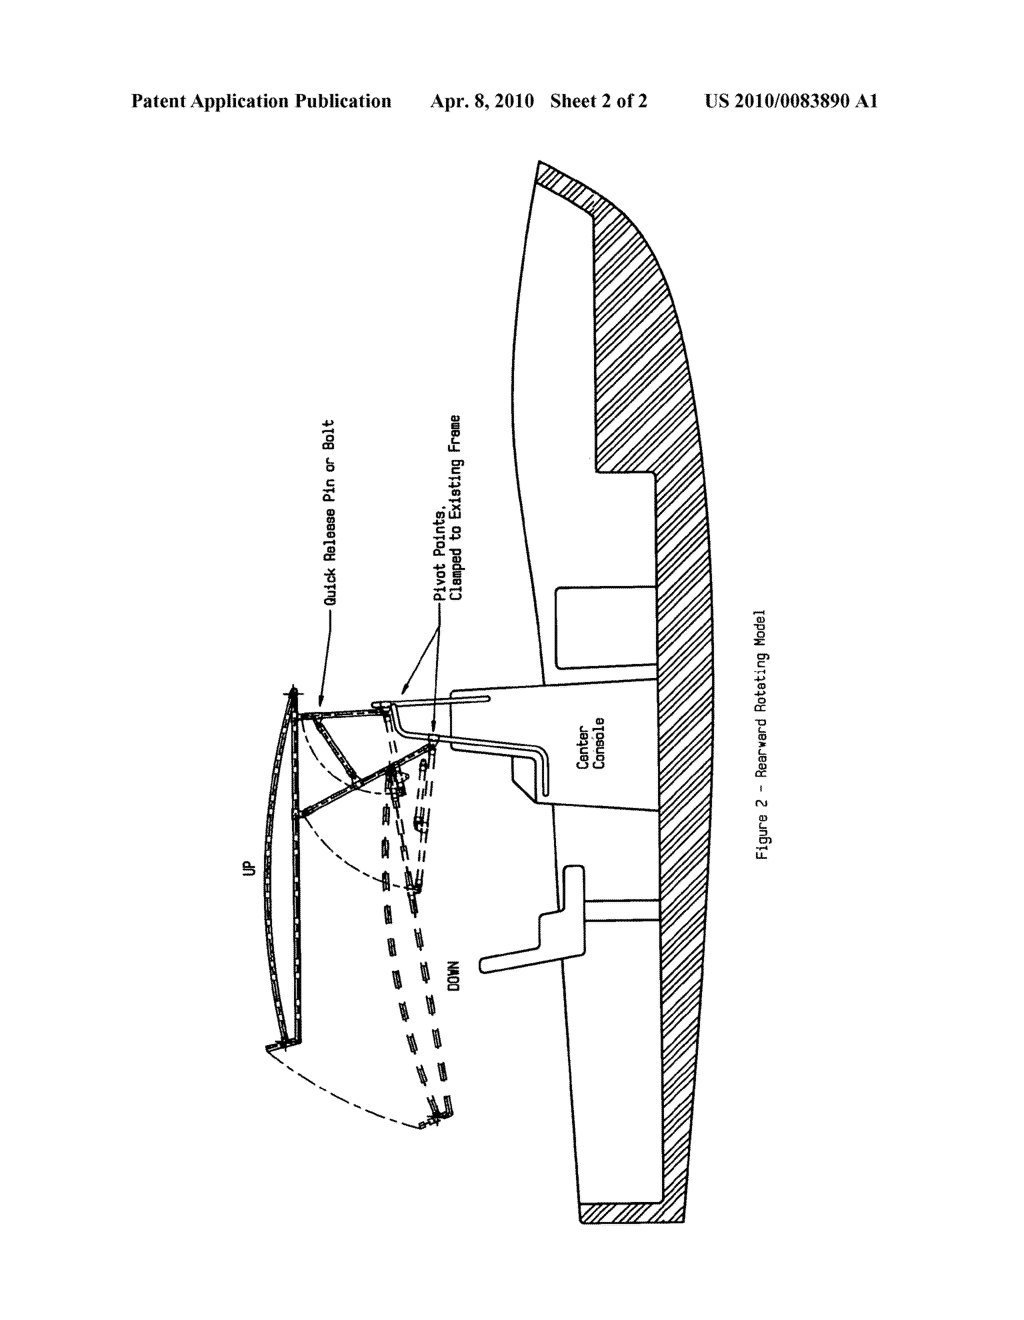 Wiring Diagram For Center Console Boat Electrical Diagrams Push To Choke Ignition Switch Of A Circuit Connection U2022